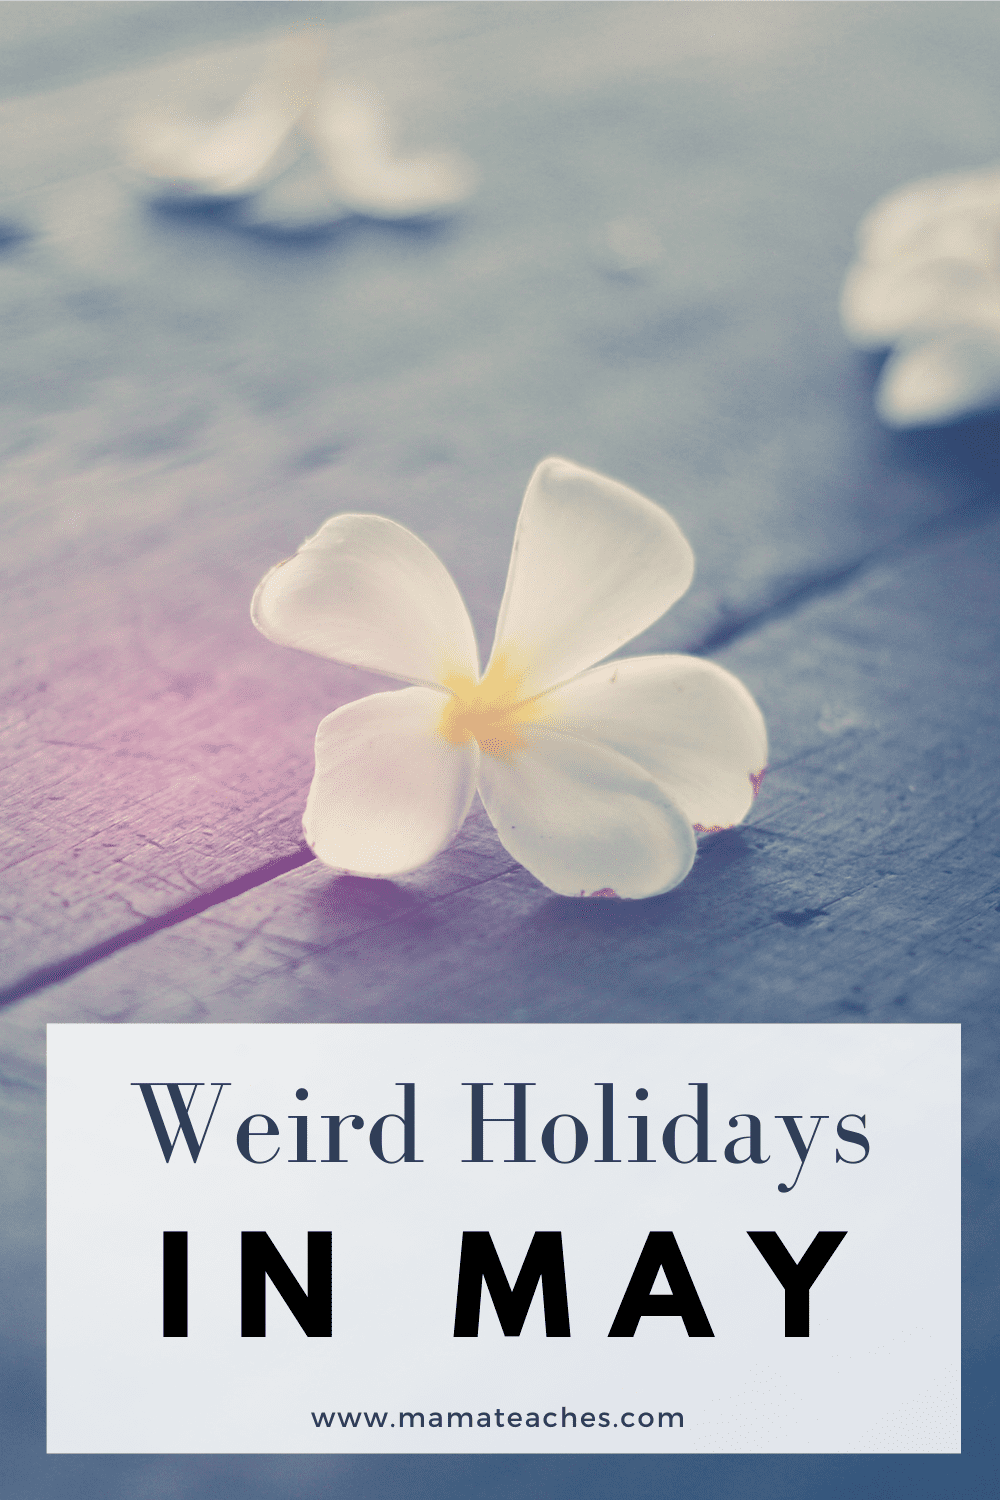 Weird Holidays in May